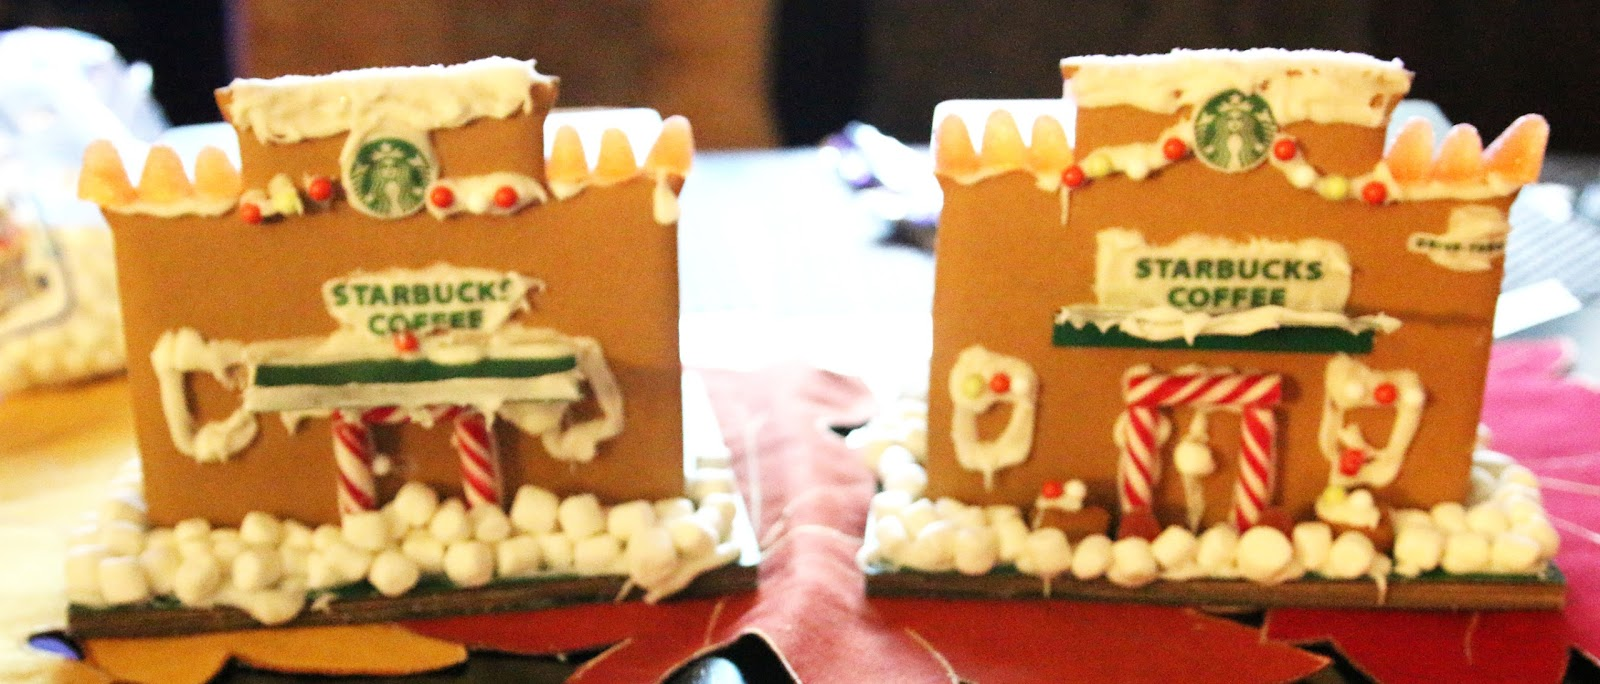 Gingerbread Starbucks {25 Days of Christmas Day 3} - Katie Snyder